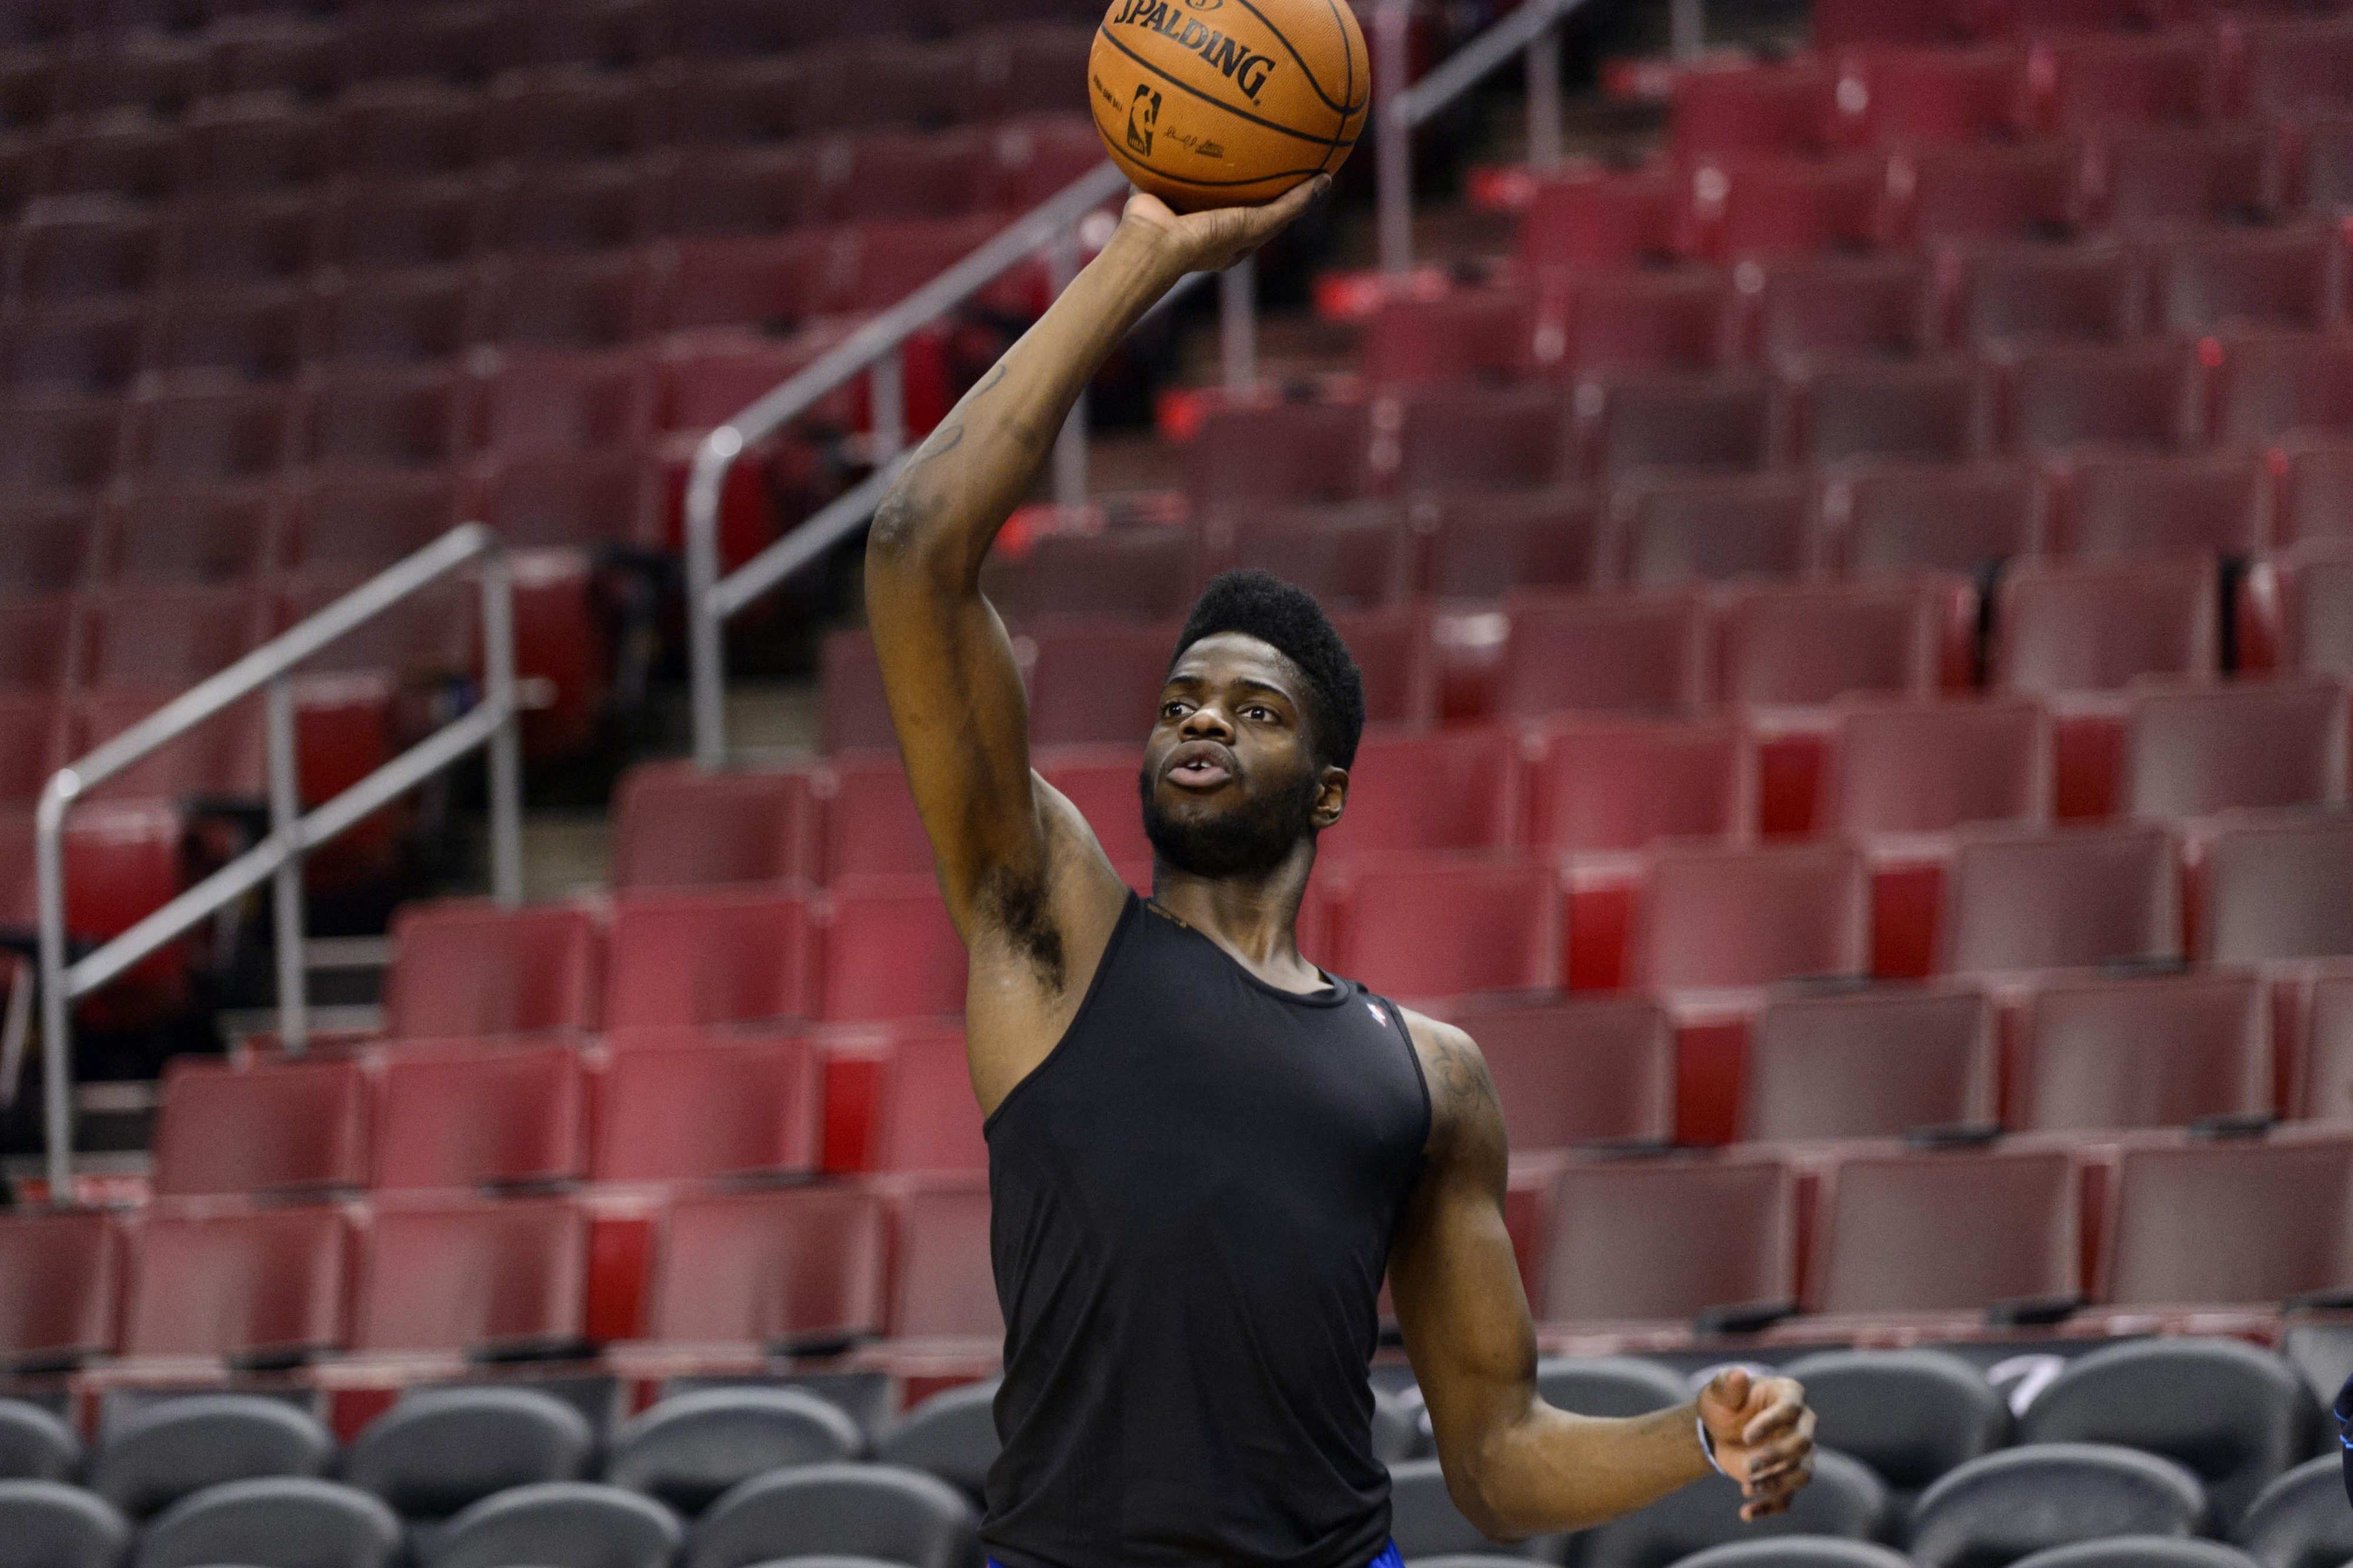 Nerlens did a lot of work on his shooting form before games last season.